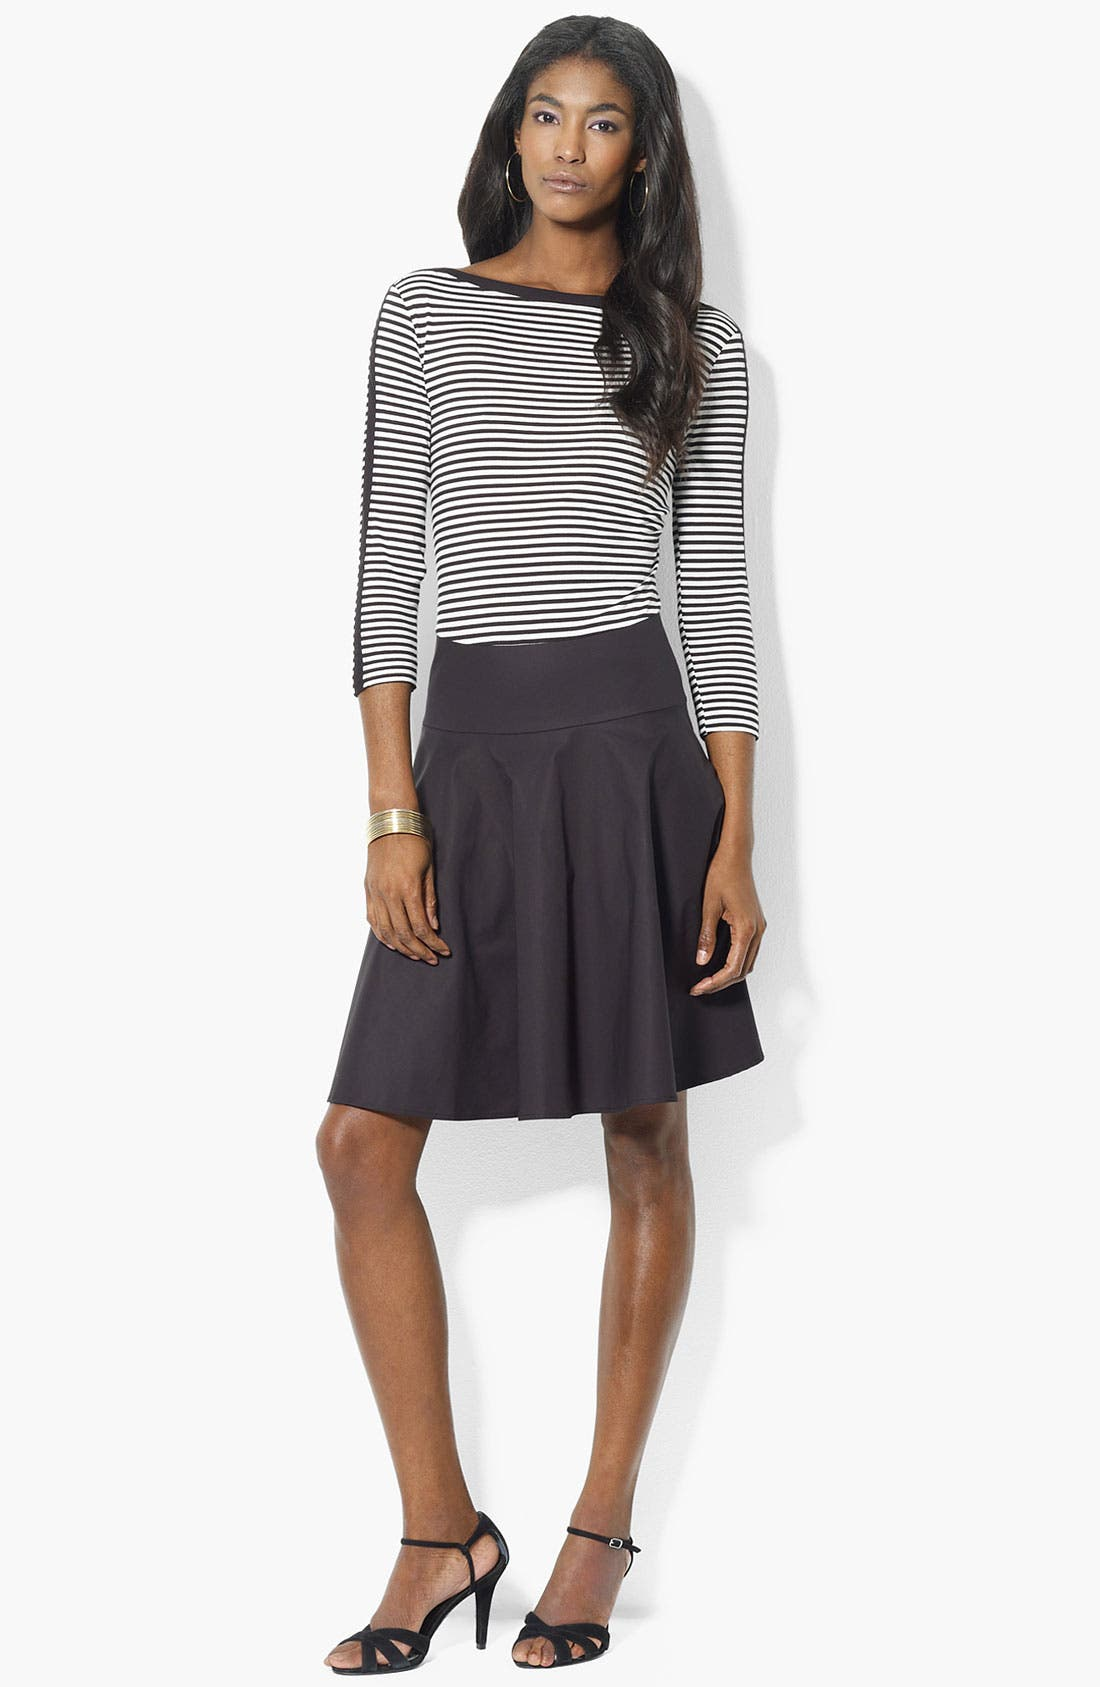 Alternate Image 1 Selected - Lauren Ralph Lauren Mock Two Piece Dress (Petite) (Online Only)